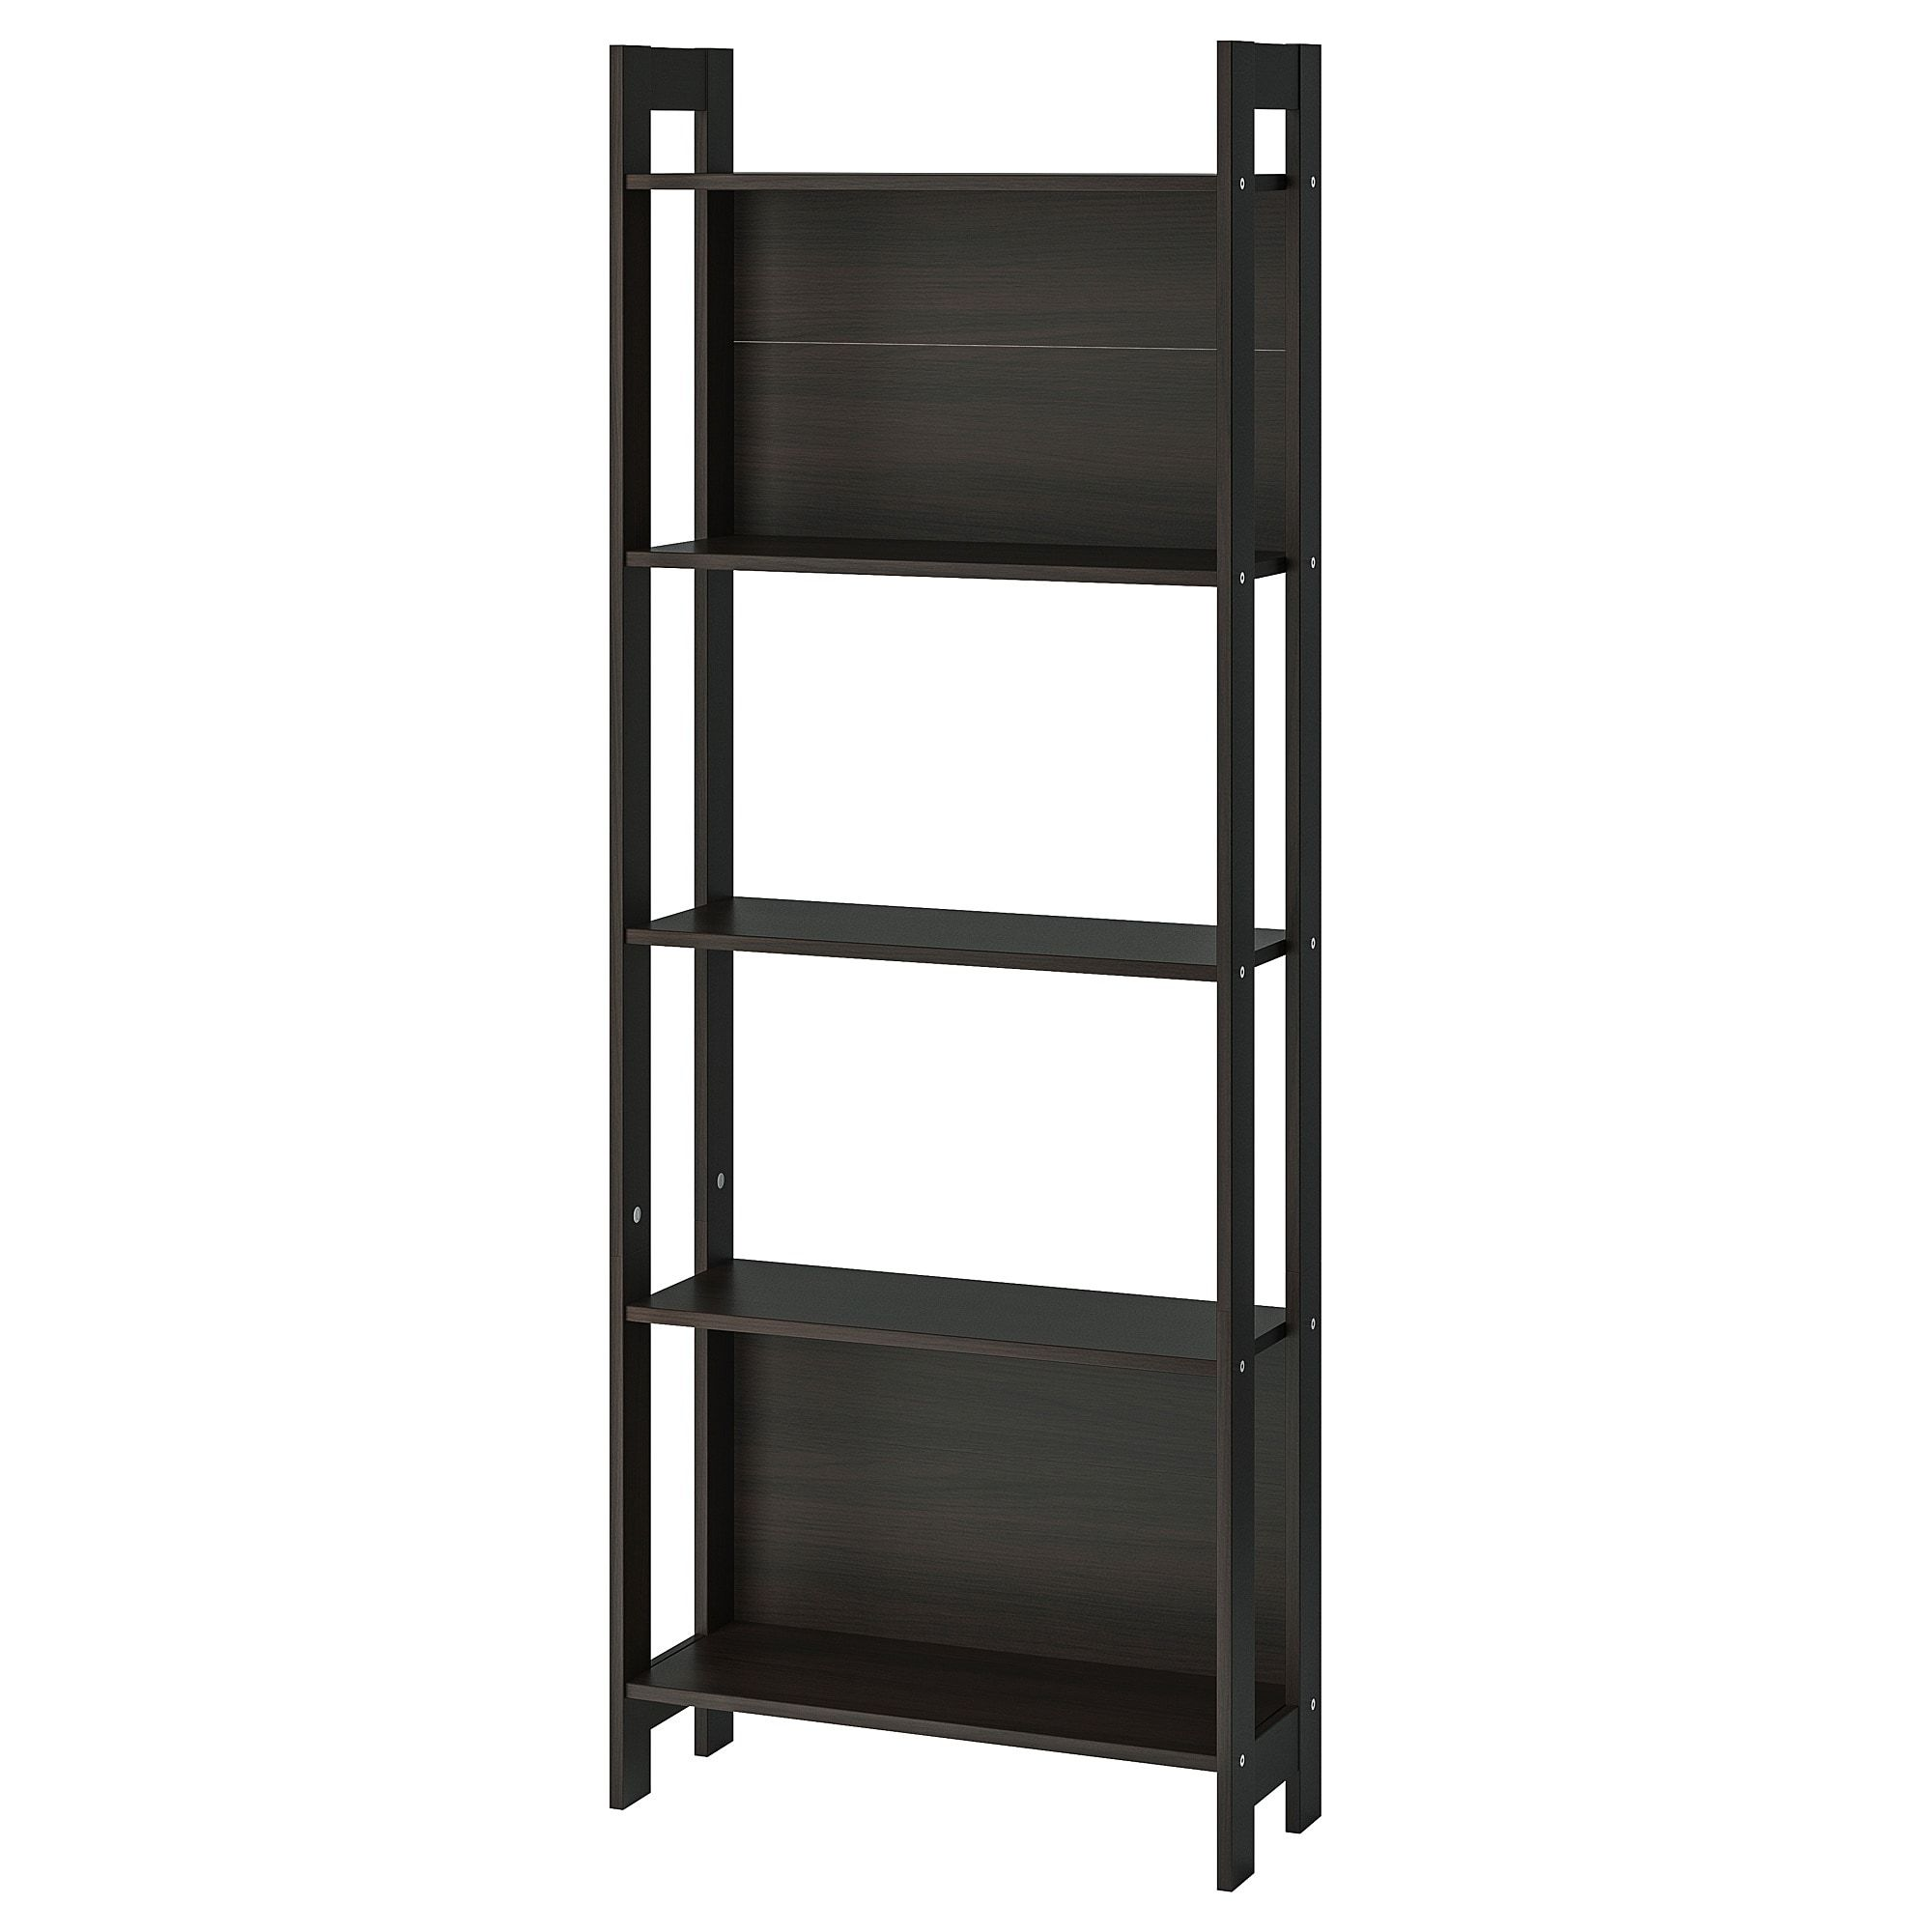 Laiva Regal Laiva Bookcase Black Brown Items For The Home Pinterest